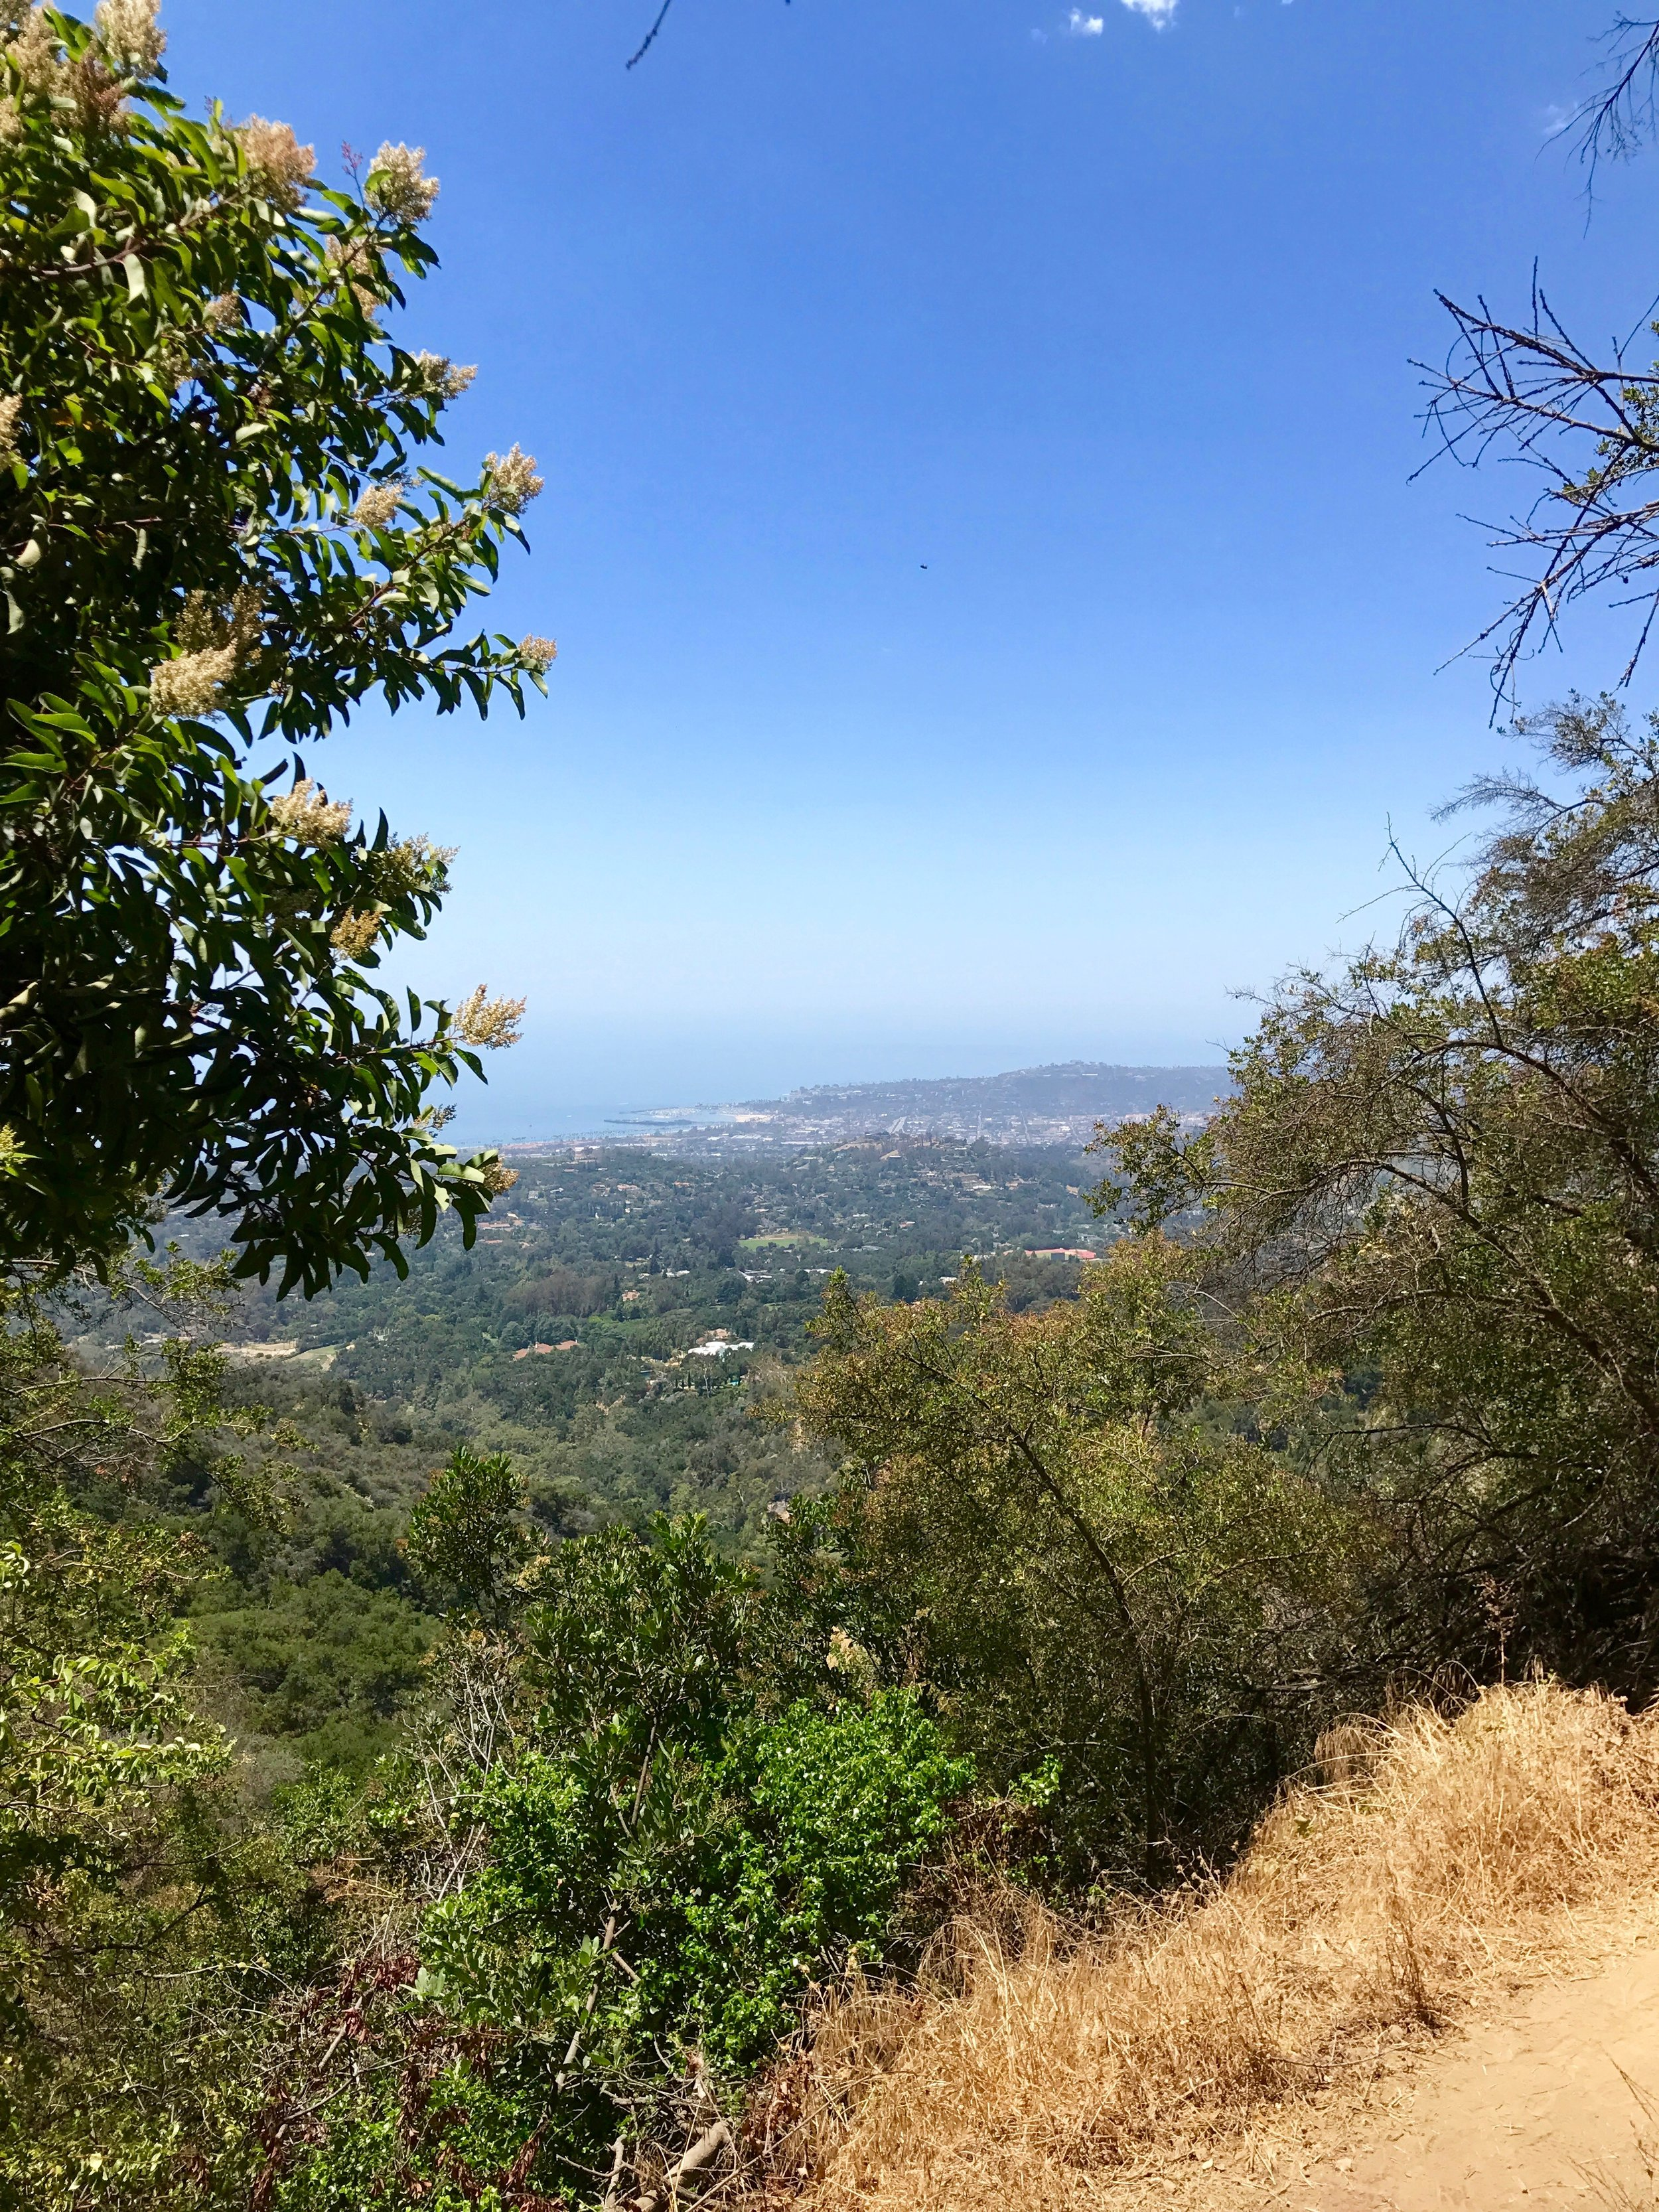 Views of Santa Barbara City from the mountains